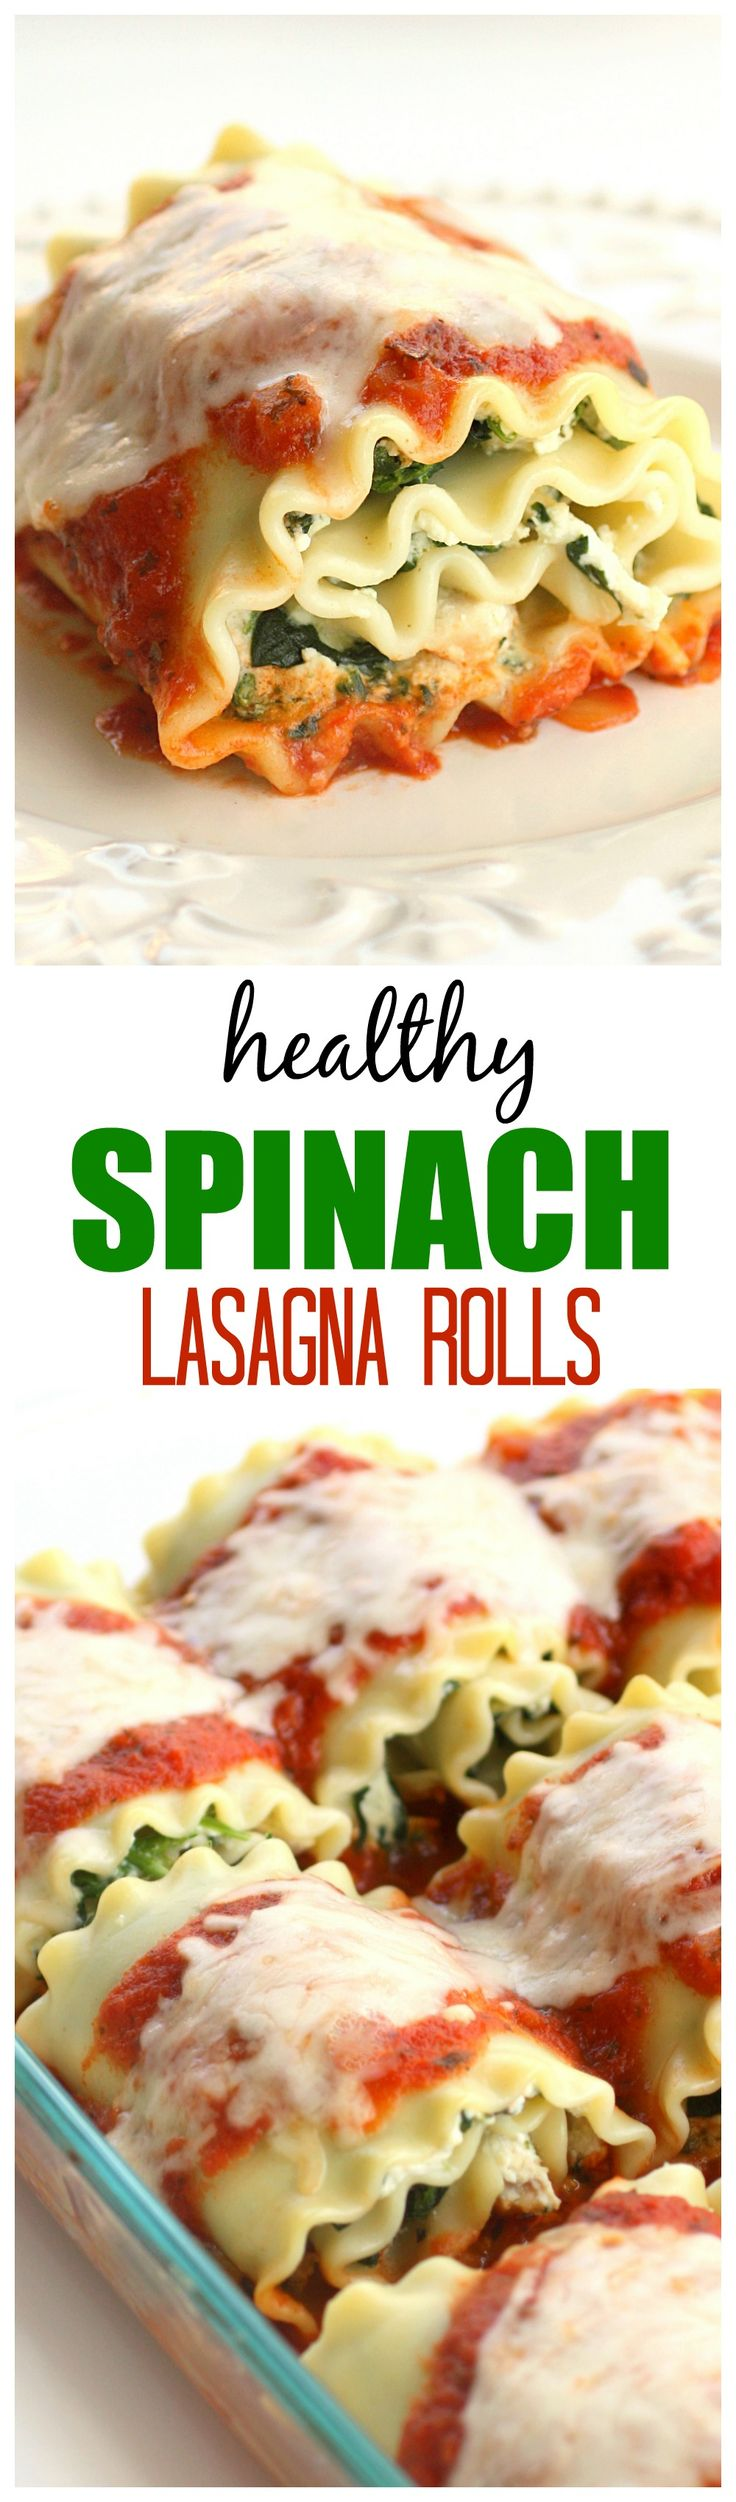 Healthy Spinach Lasagna Rolls - easy, healthy, and filling! the-girl-who-ate-everything.com- I've made these 15 years ago. So easy but I use beef and cook it with the spices. Put sauce and olive on the bottom of pan and a tad of red wine. Cut some fresh or part skim mozzarella and place pieces on each roll, cover for most of cooking time and last 10 minutes take foil off so all is melted through... Keep the oven door open and watch it, it may take less time... make your own garlic bread…